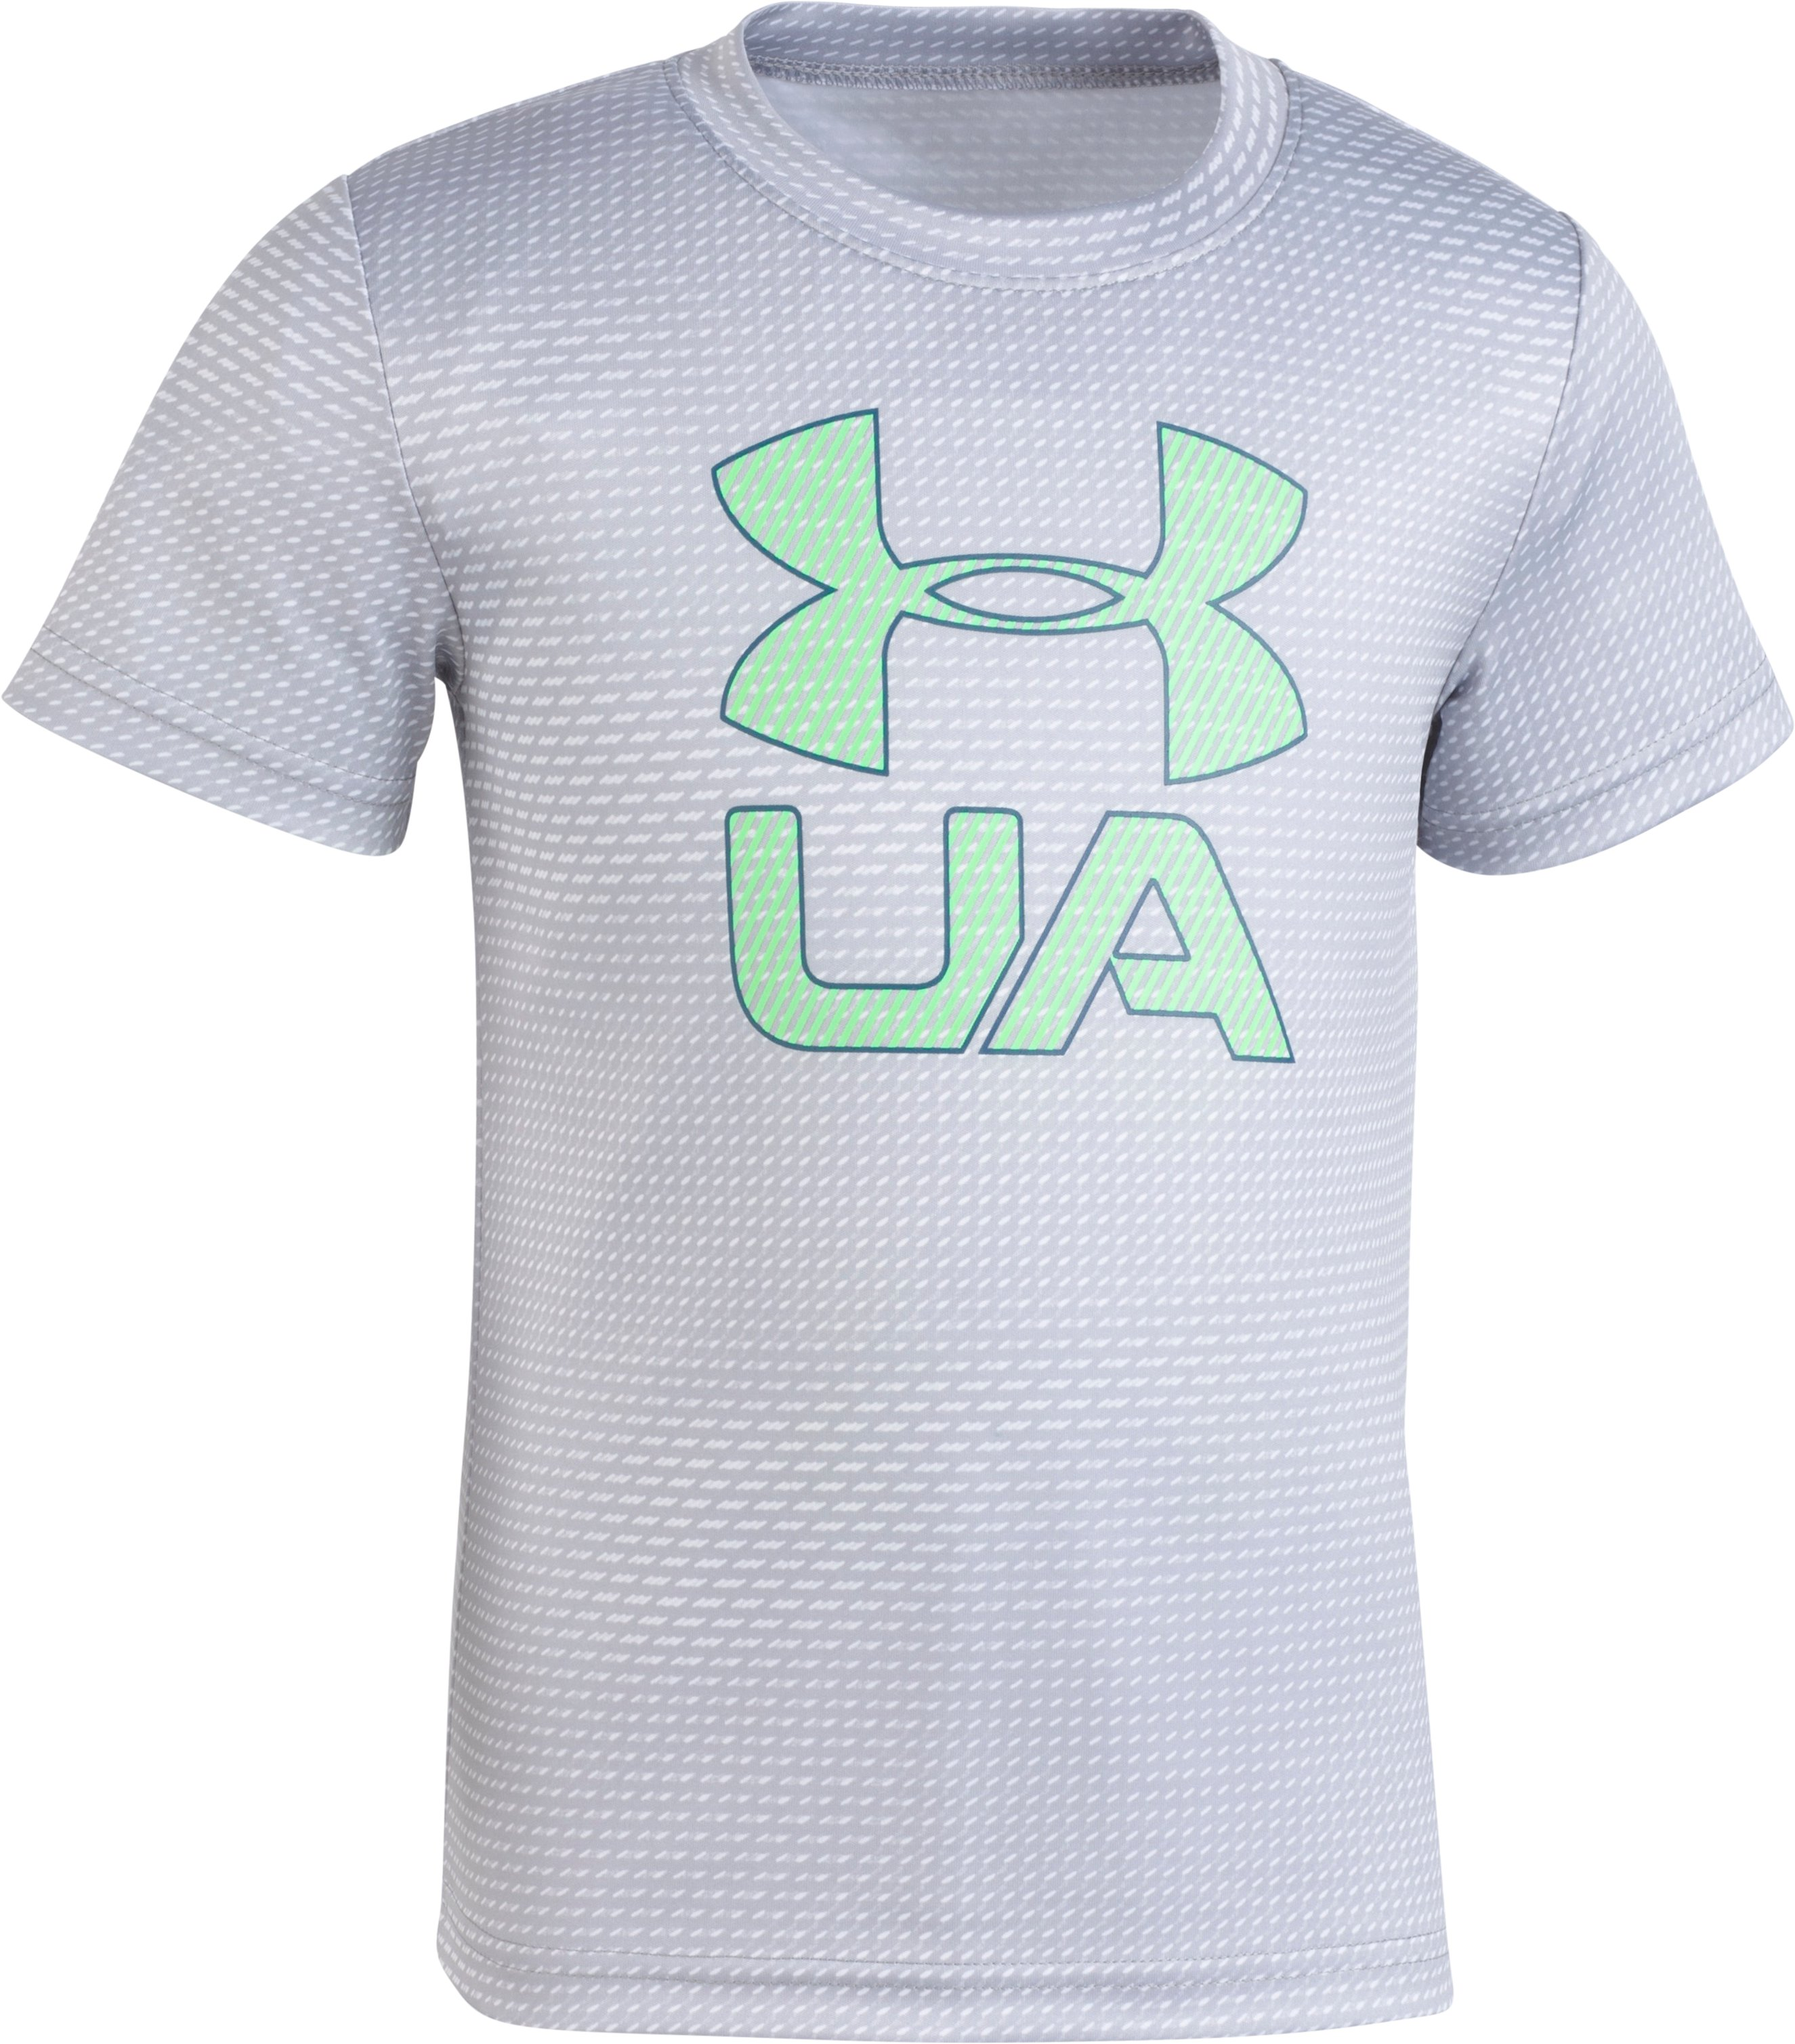 Boys' Pre-School UA Sync T-Shirt, White